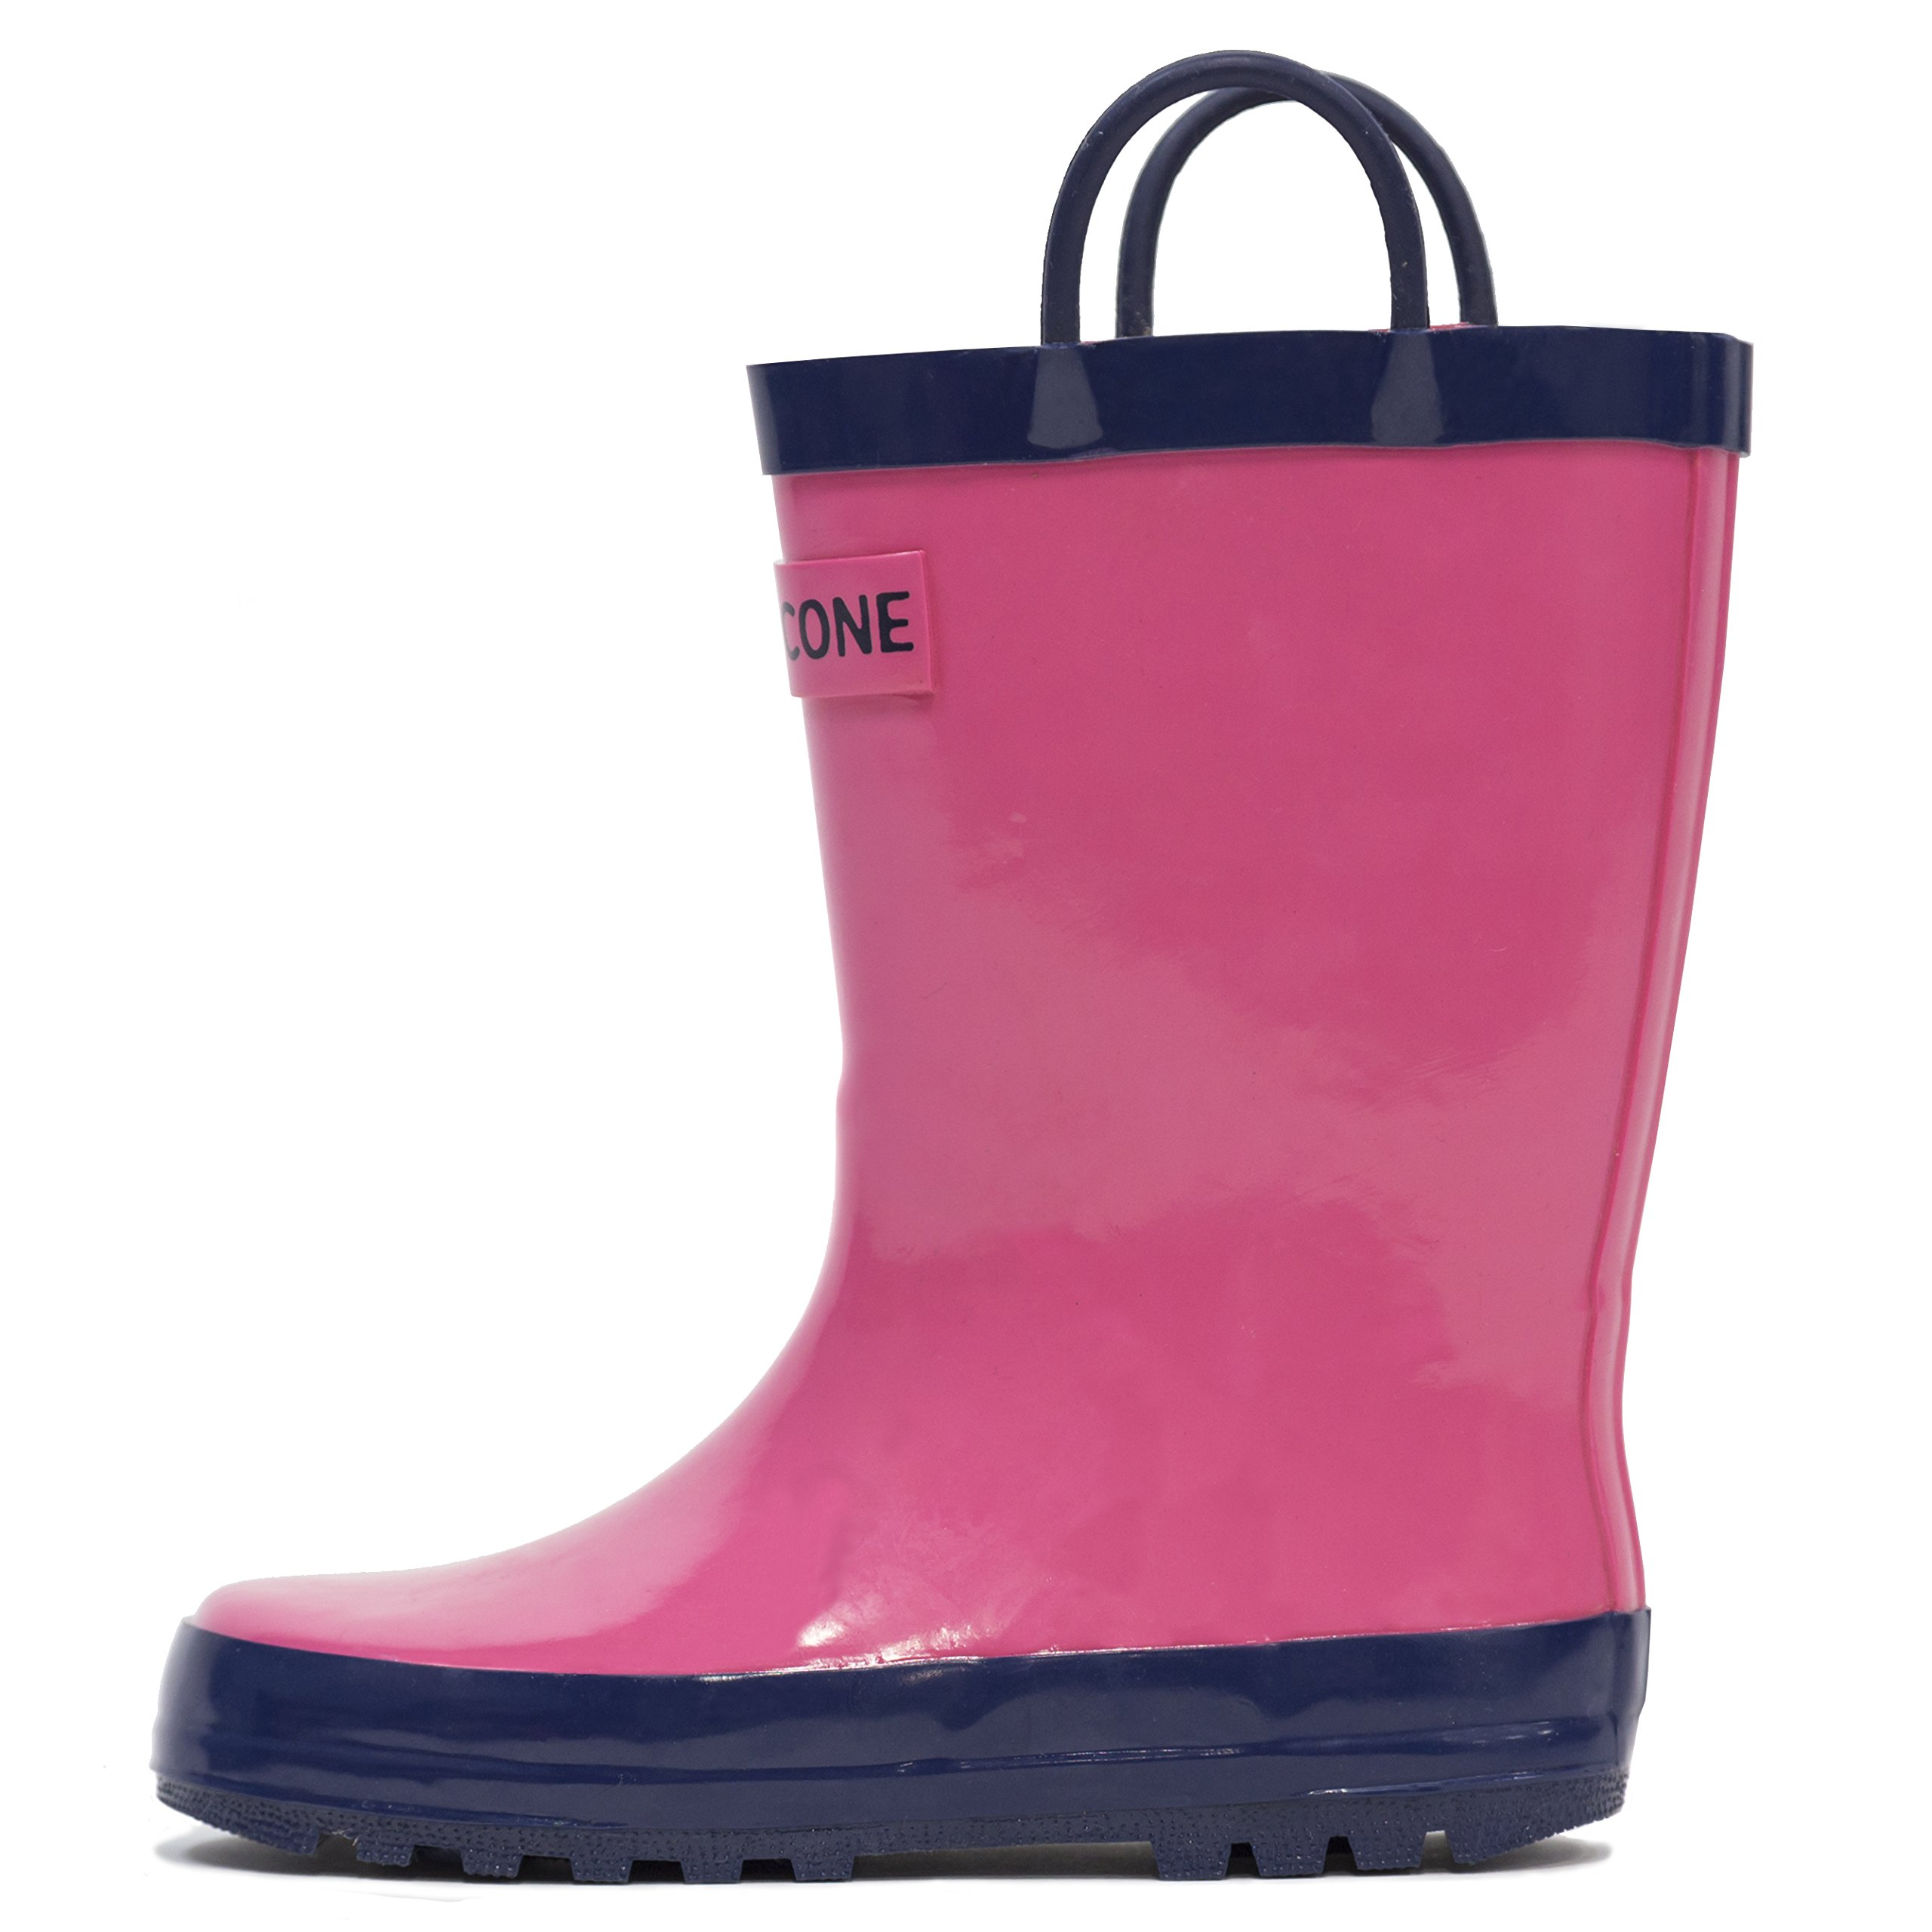 LONECONE Kids' Waterproof Rubber Rain Boots with Easy-On Handles, Bubblegum Pink, Toddler 8